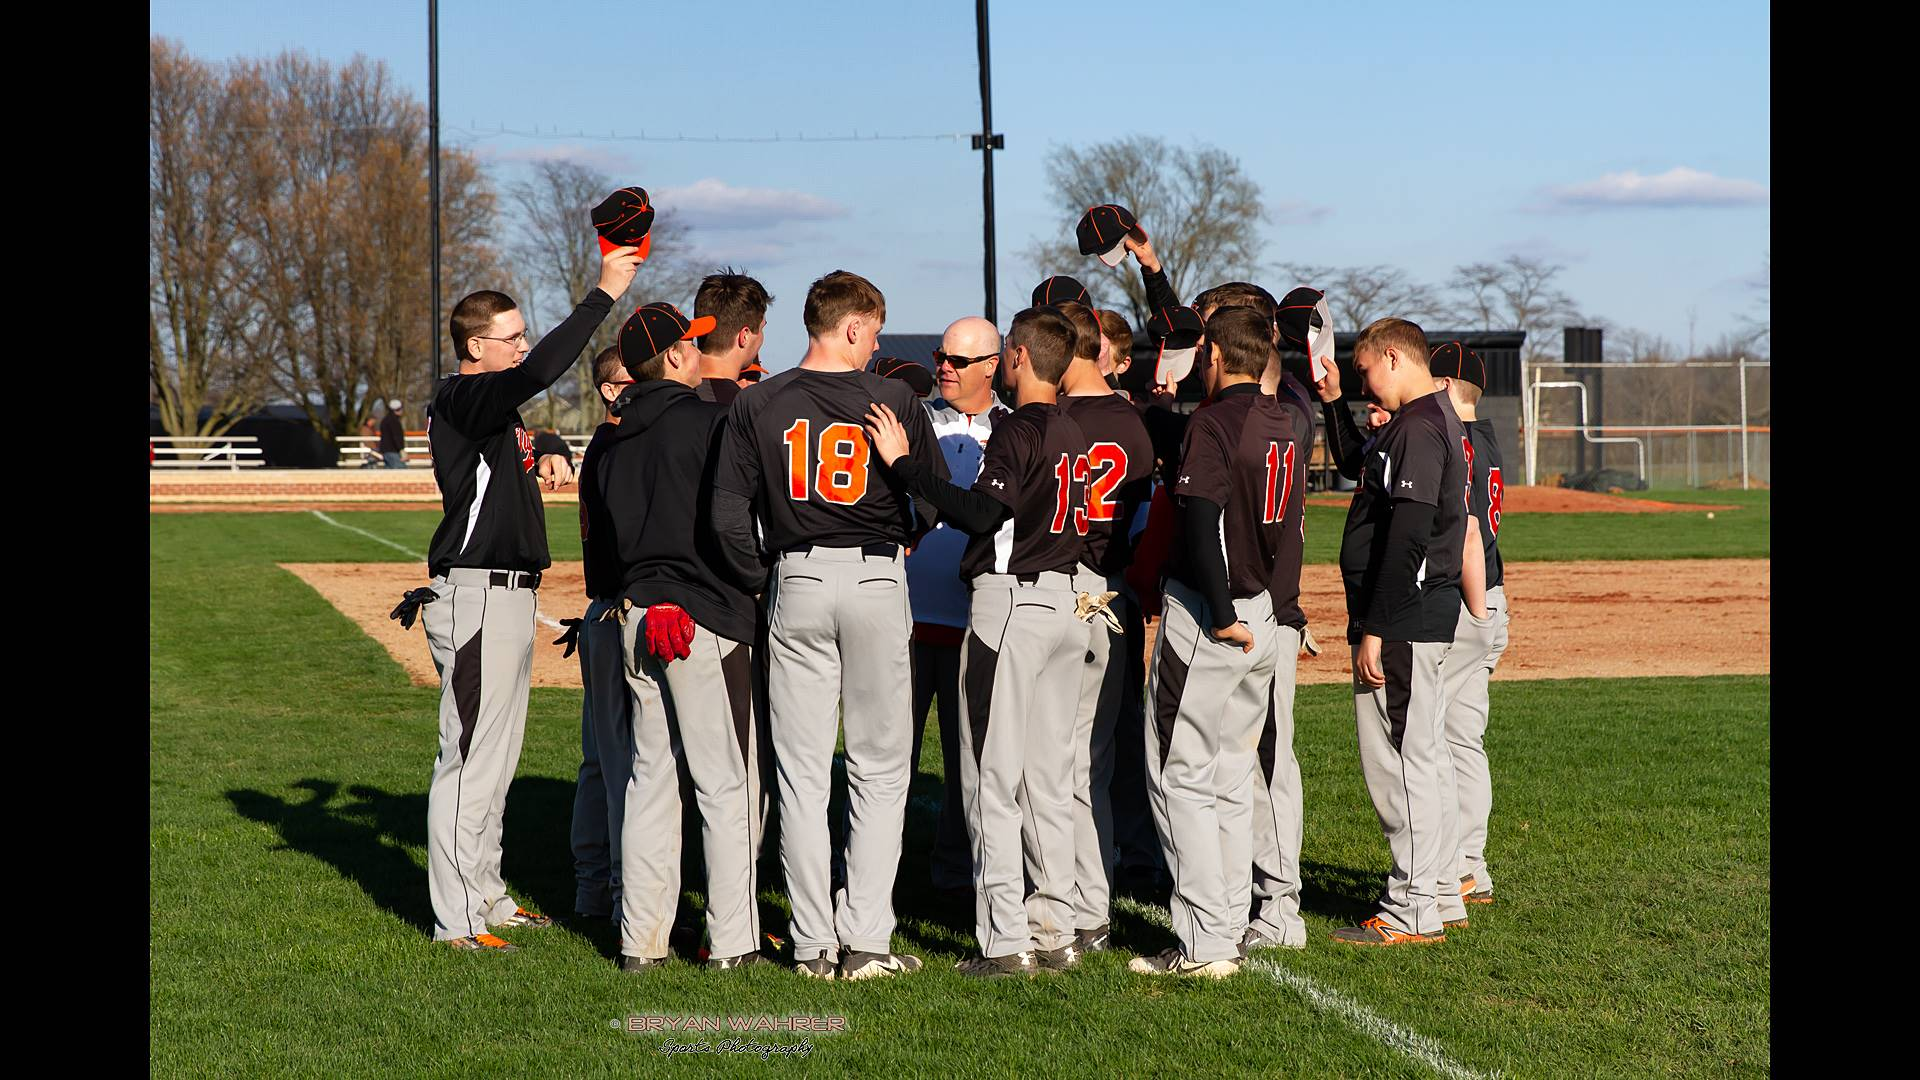 Baseball team group huddle with coach